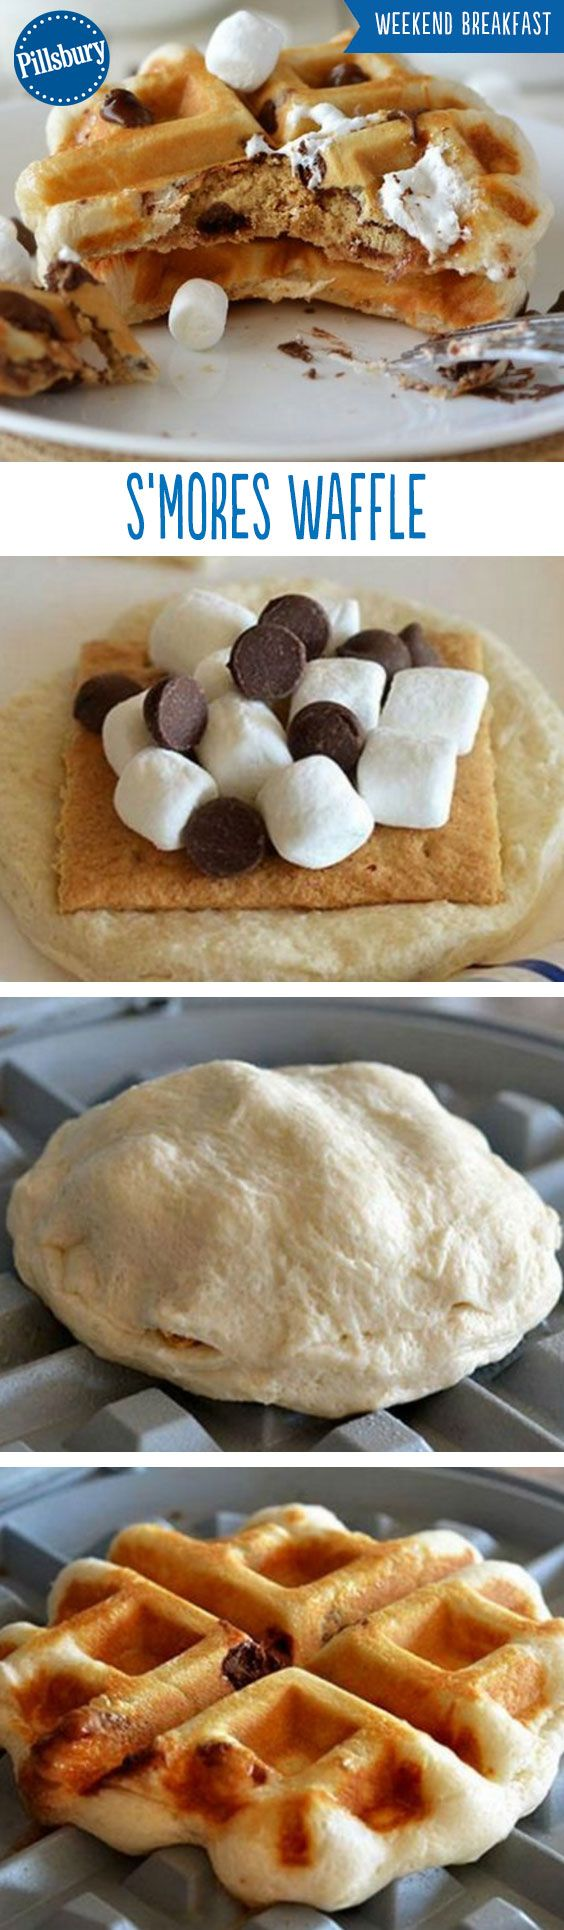 The brunch game has been changed. S'mores Waffles is the delicious breakfast you never knew you needed. Made with biscuits, graham crackers, marshmallows and chocolate chips your entire family will want more!